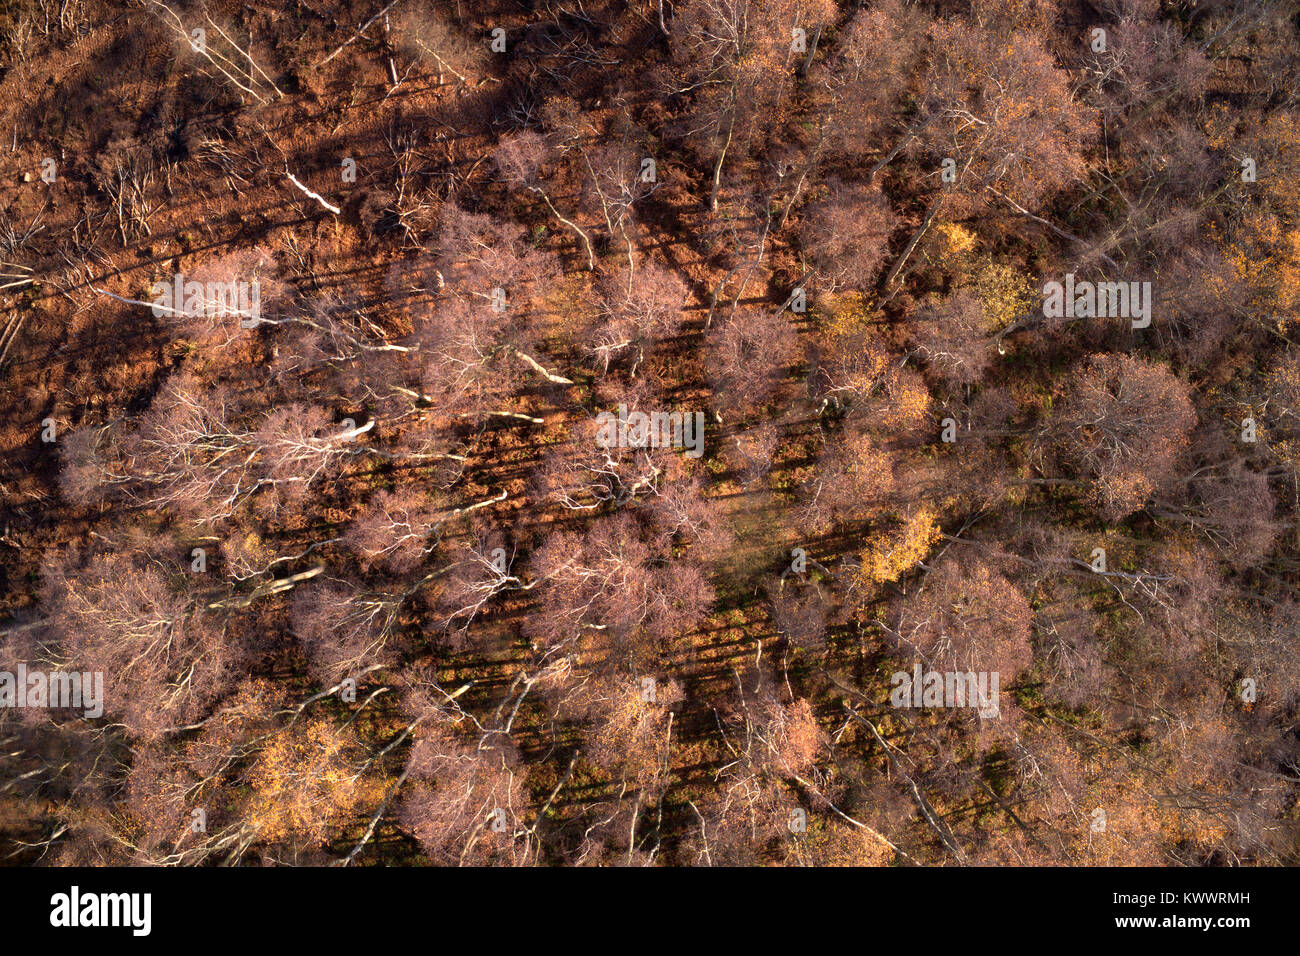 Drones eye view over Silver Birch trees at Holme Fen SSSI nature reserve, Cambridgeshire, England, UK - Stock Image